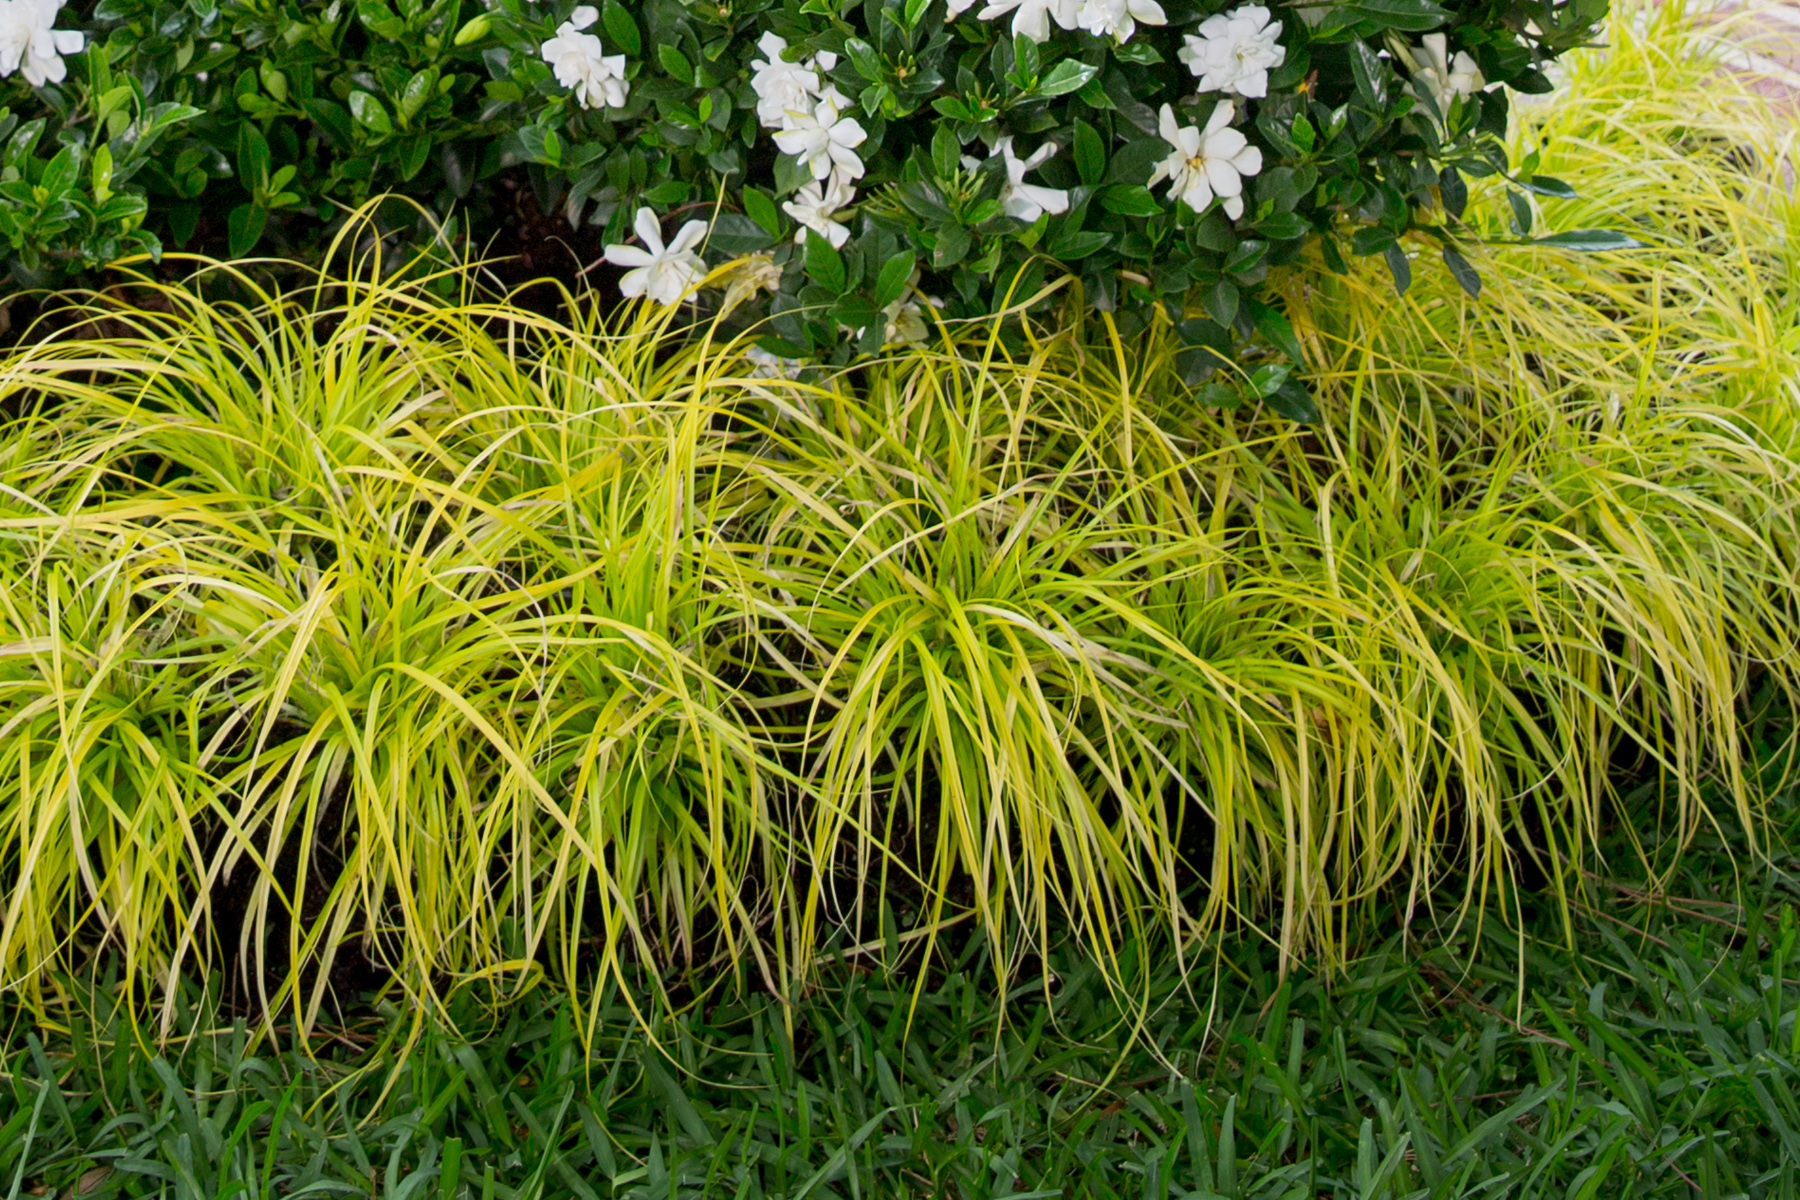 'Everillo' Carex